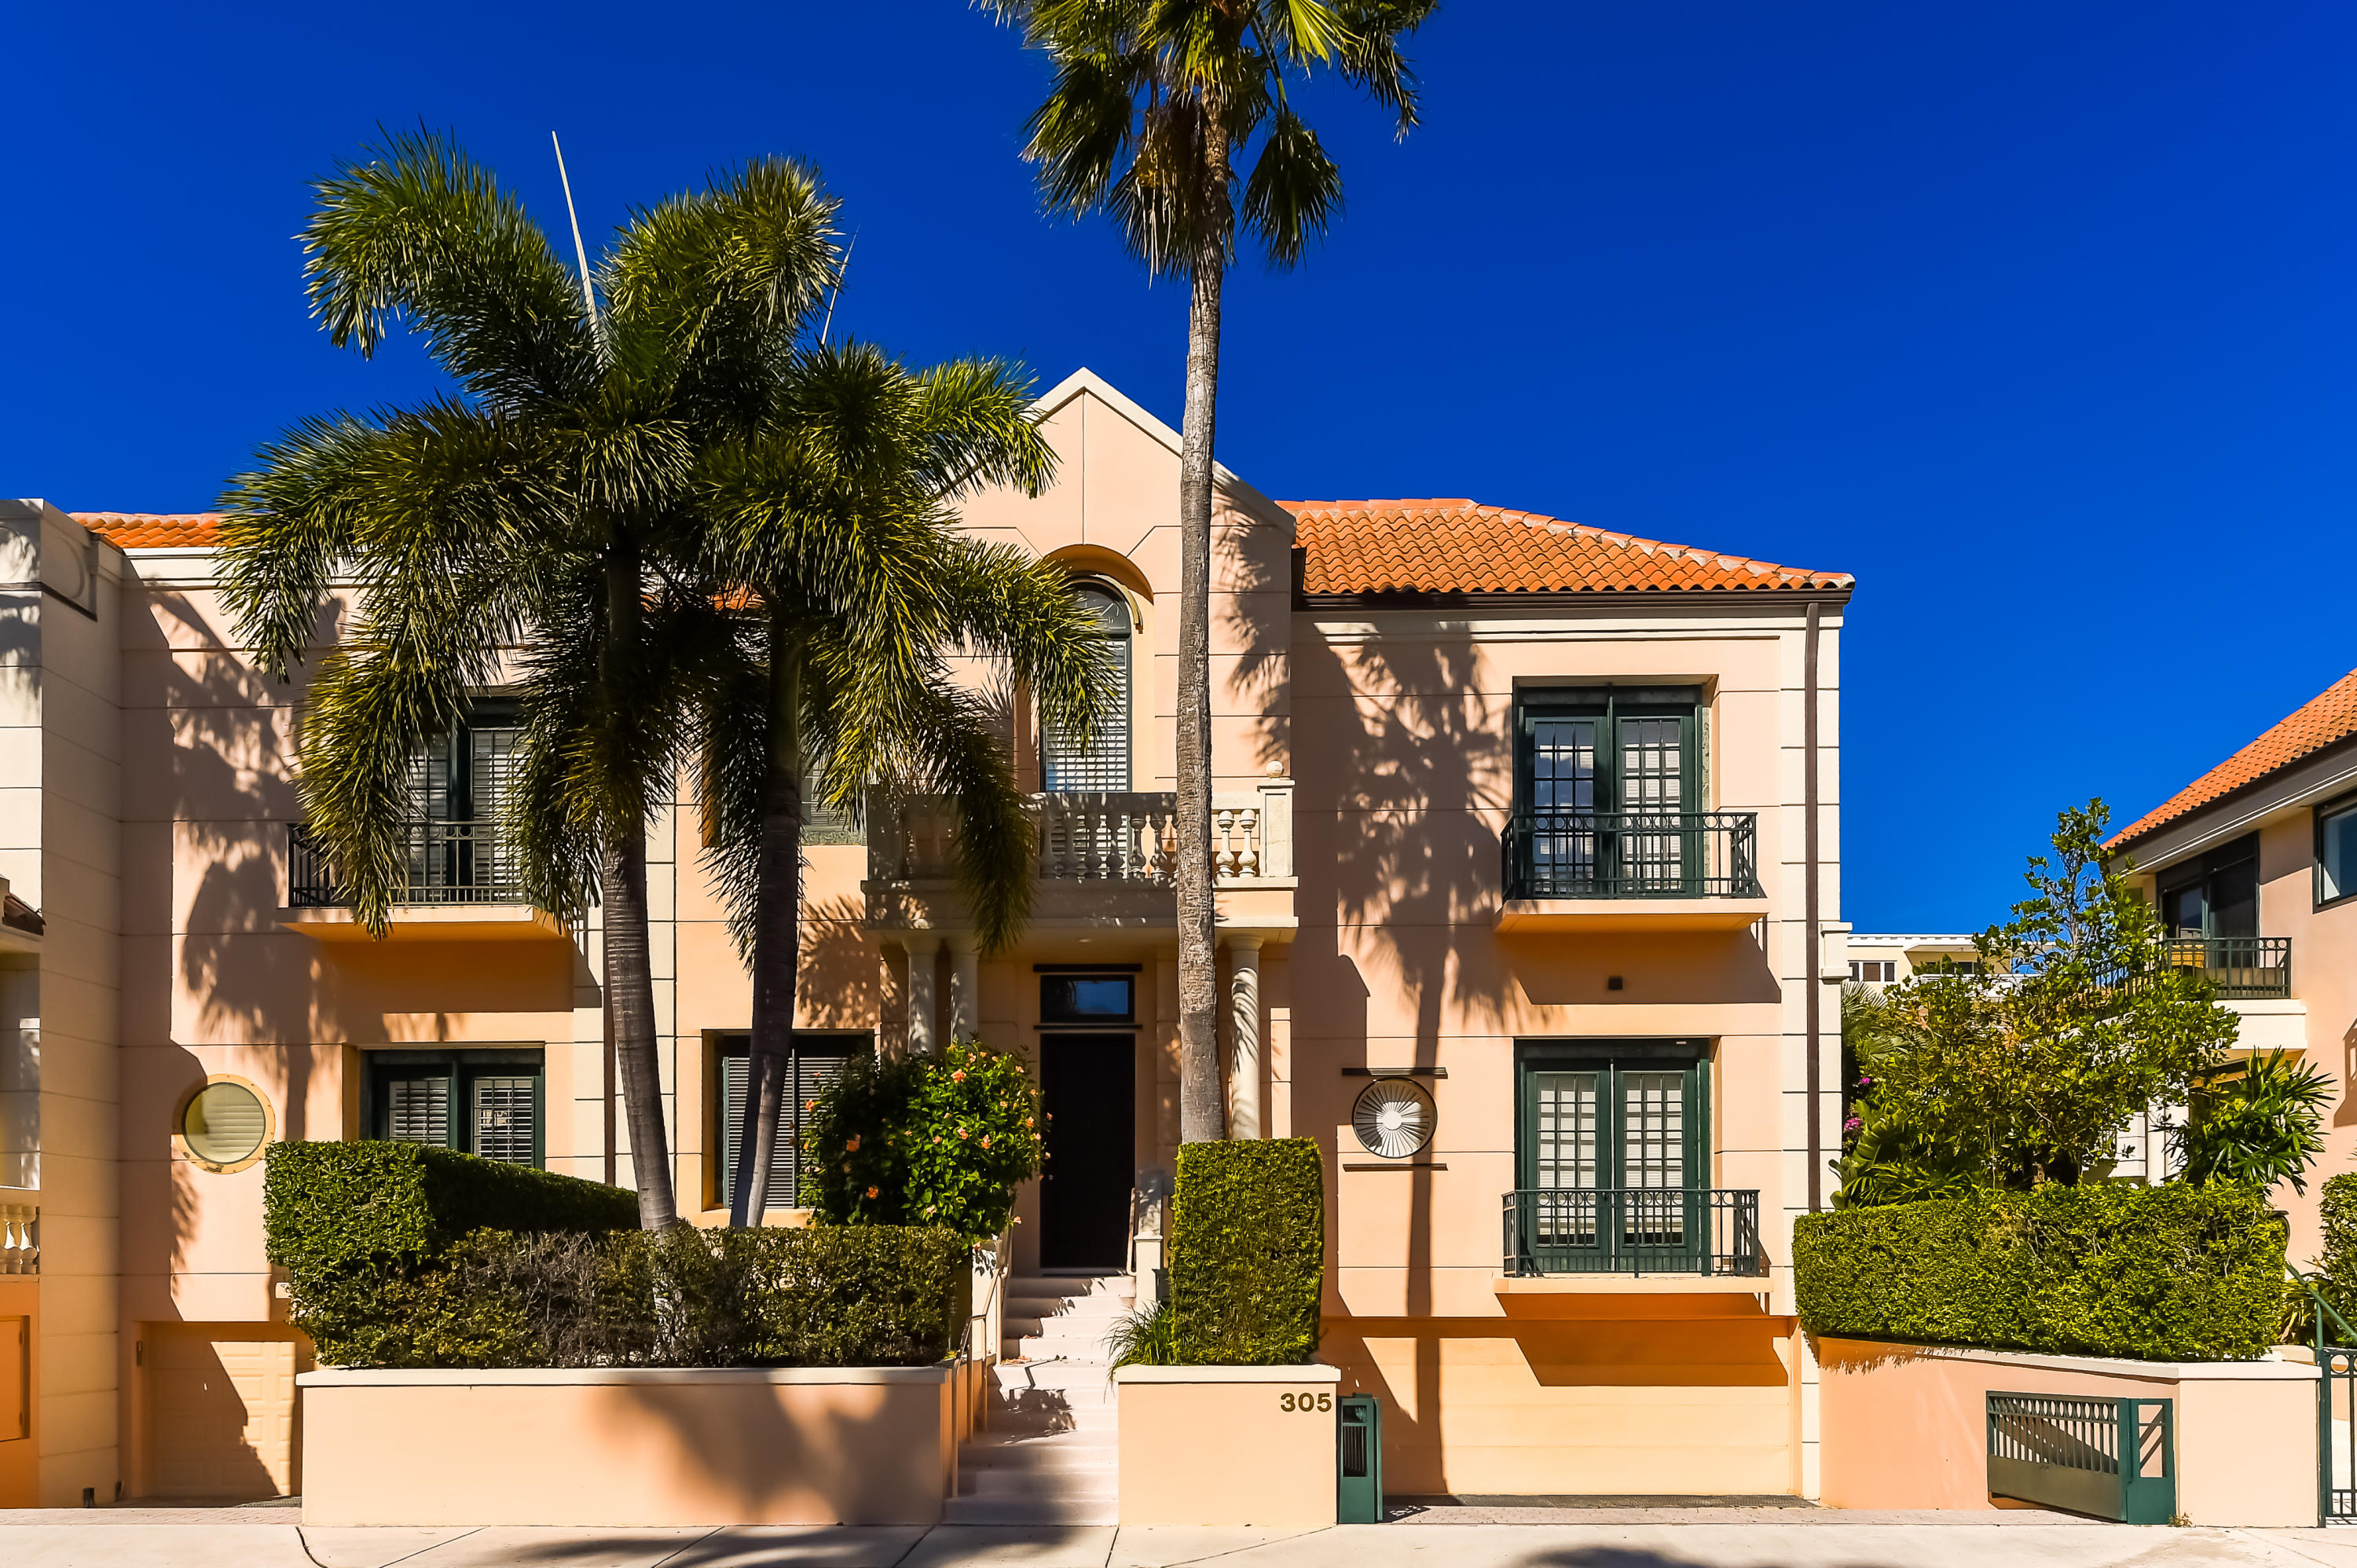 Spacious (4,821 total sf) 3 BR + den and 3.5 bathrooms with very high ceilings, an open, airy floorp